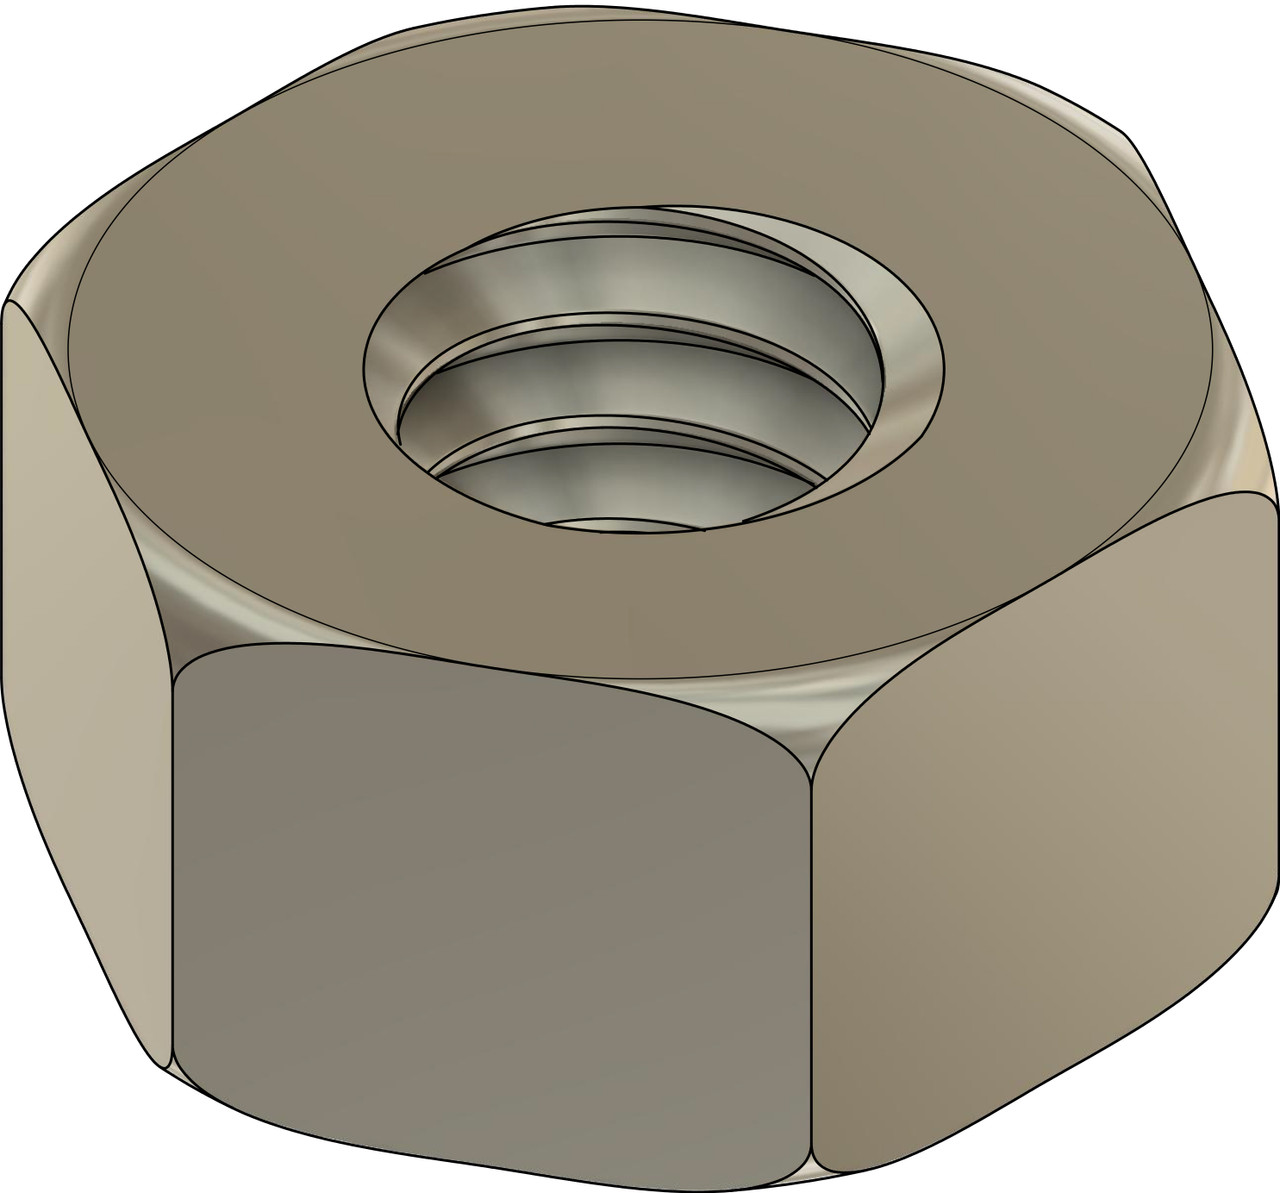 """Machined Hex Nut Standard Thread M1.2 (1.20UNM) 2.25mm / .089"""" ACF (Across the Flats) Nickel Silver, Finish Color Dark Silver. Resistant to Tarnish. Made on precision screw machines. Price is for 100 count package"""